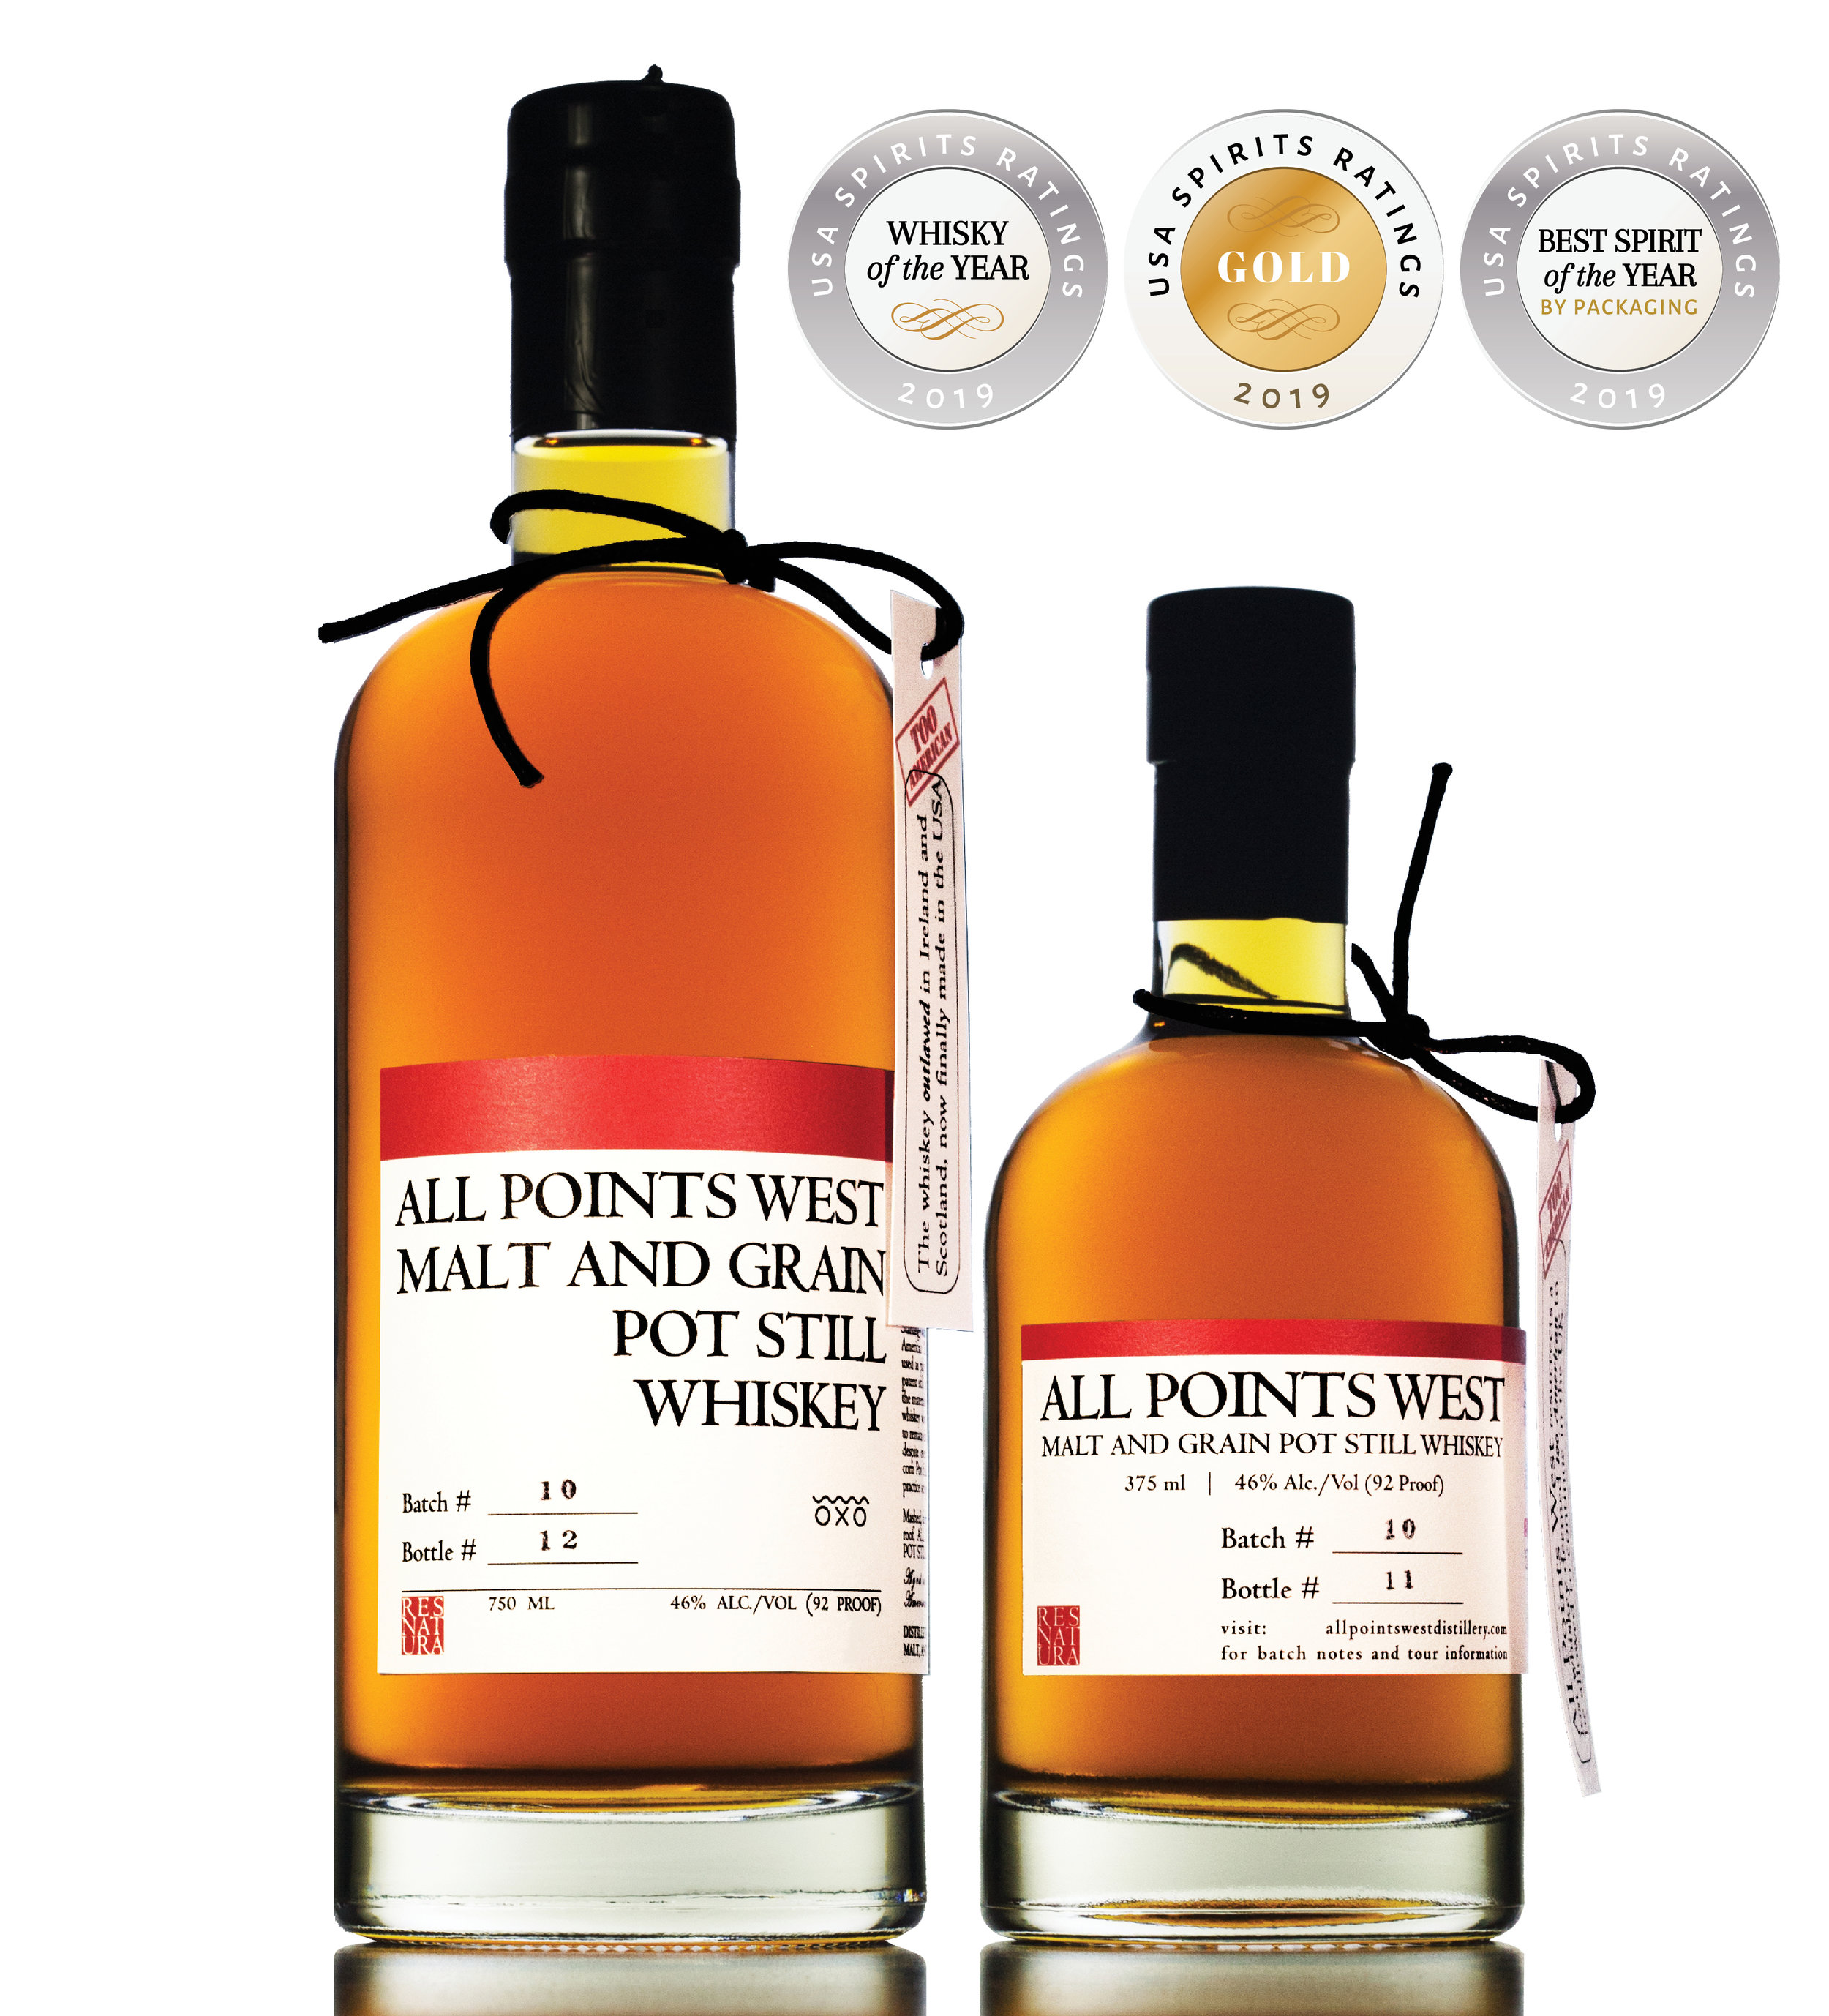 All Points West Award Winning Whiskey